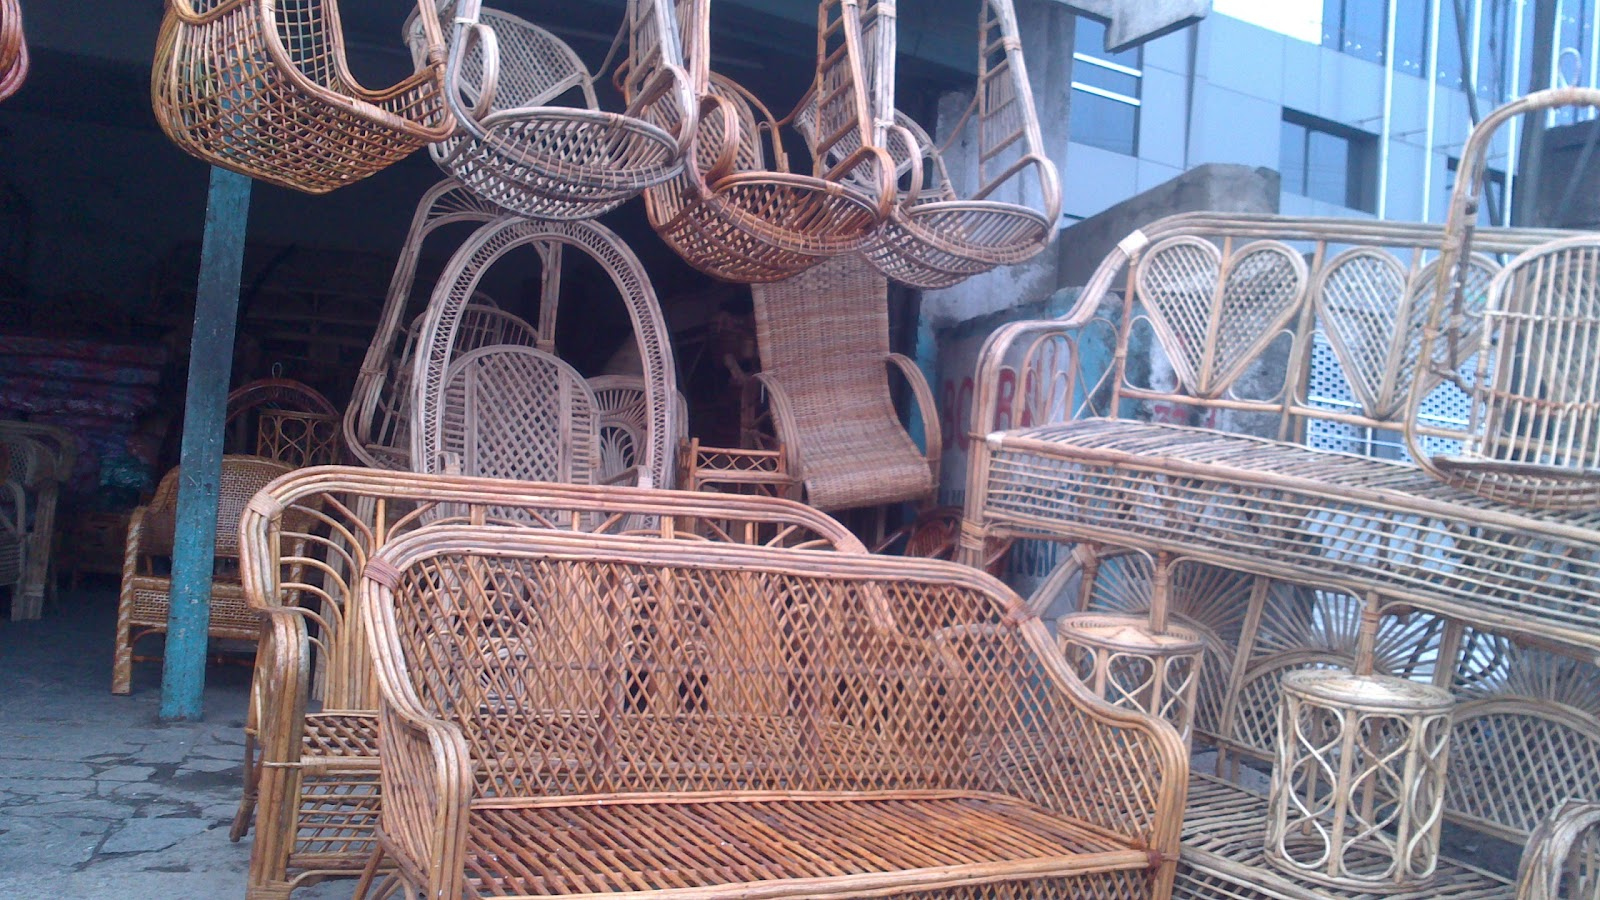 Swing Chair Hyderabad White And Gold Local Markets Marketing